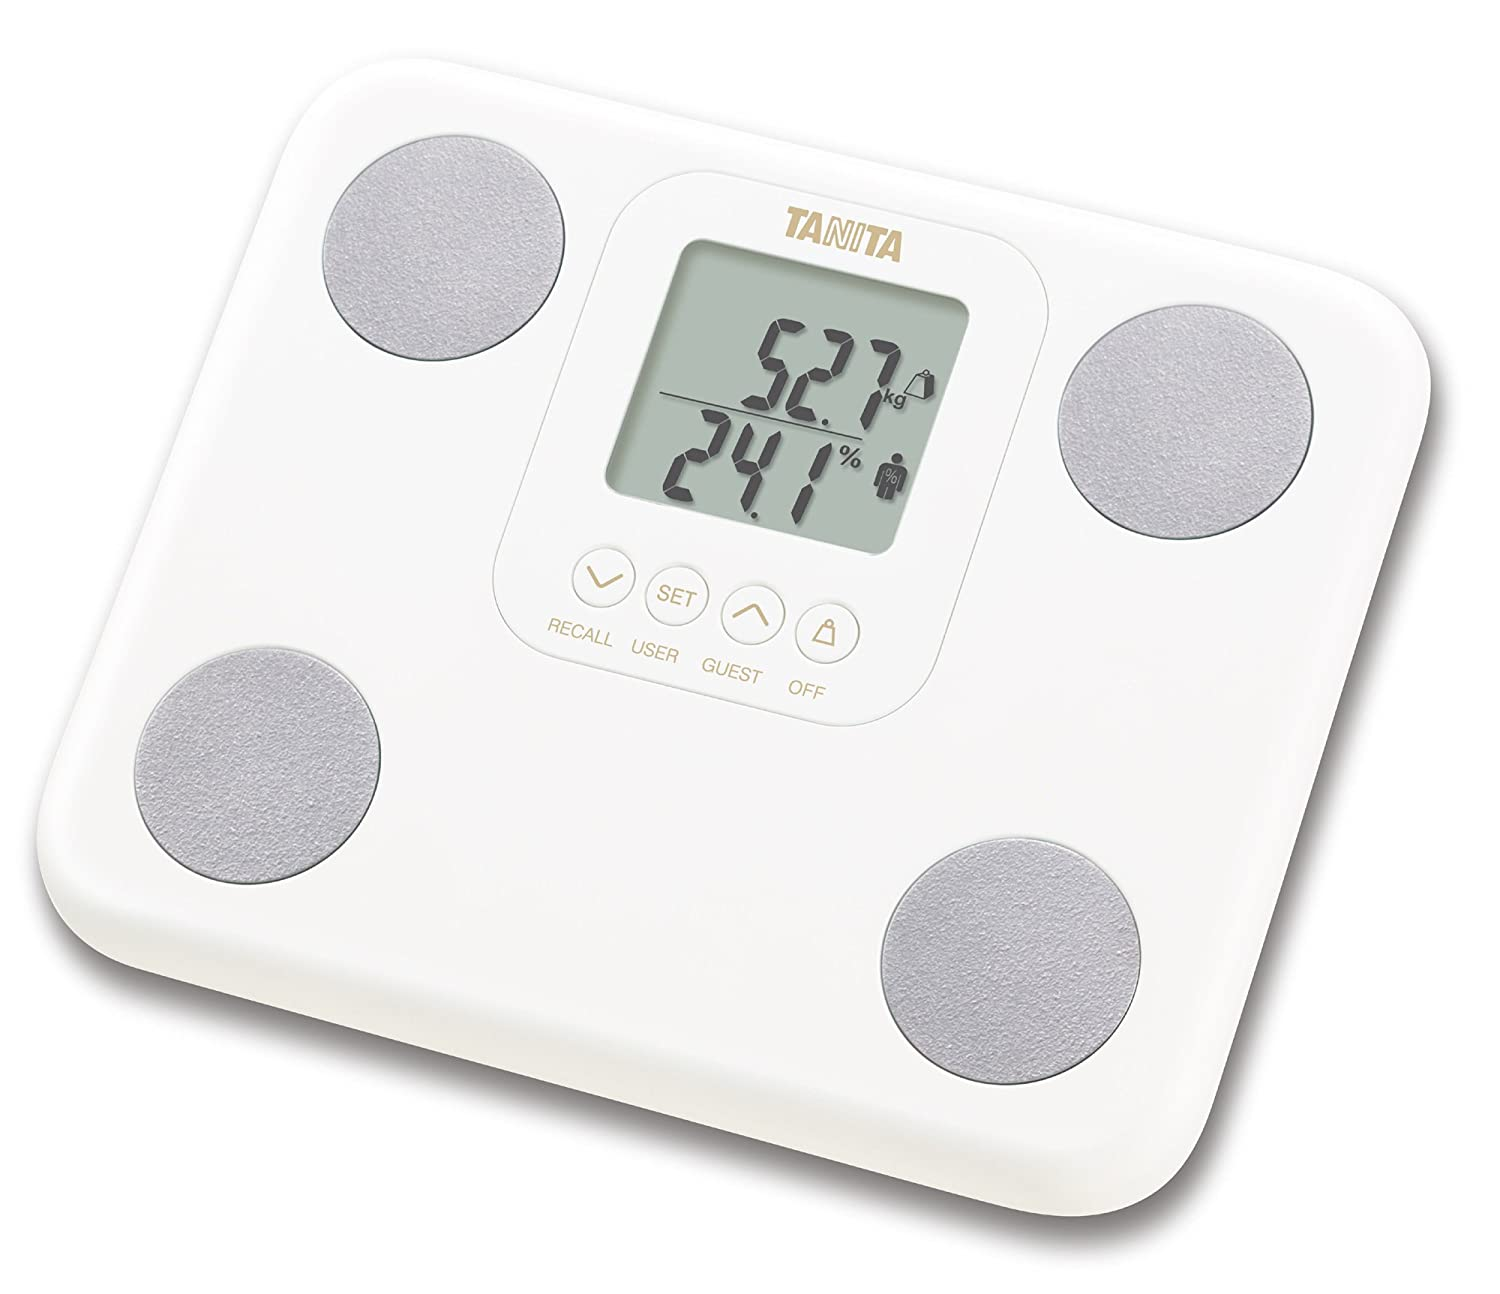 Tanita BC730W InnerScan Electronic Body Composition Scale